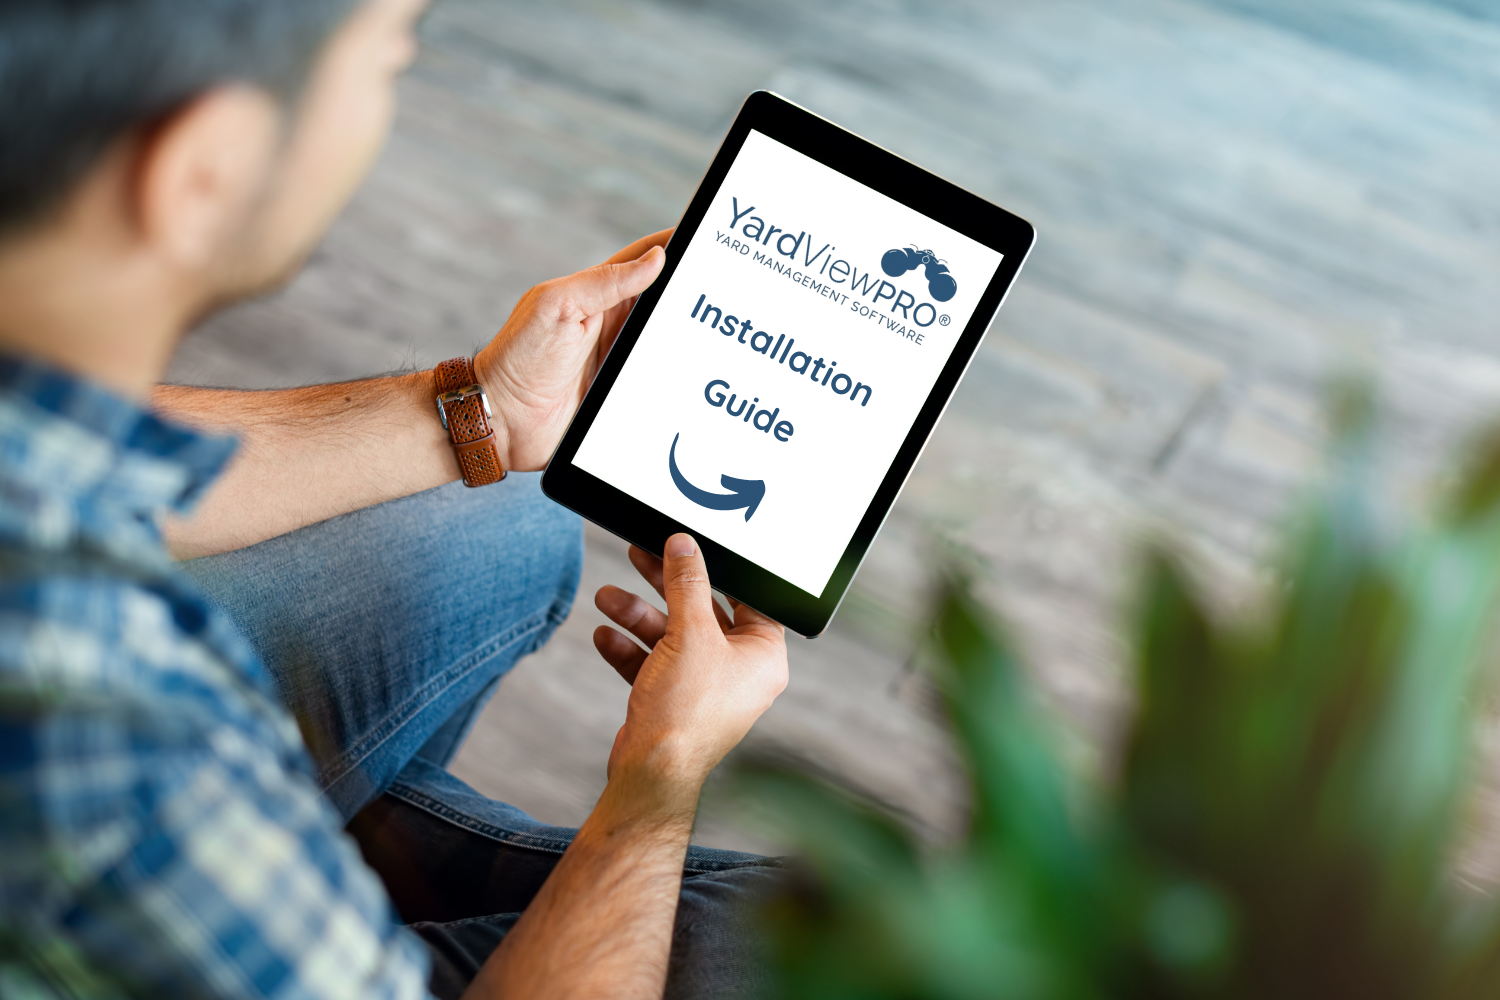 Man holding a tablet reading an e-document about a guide to installing YardView yard management software